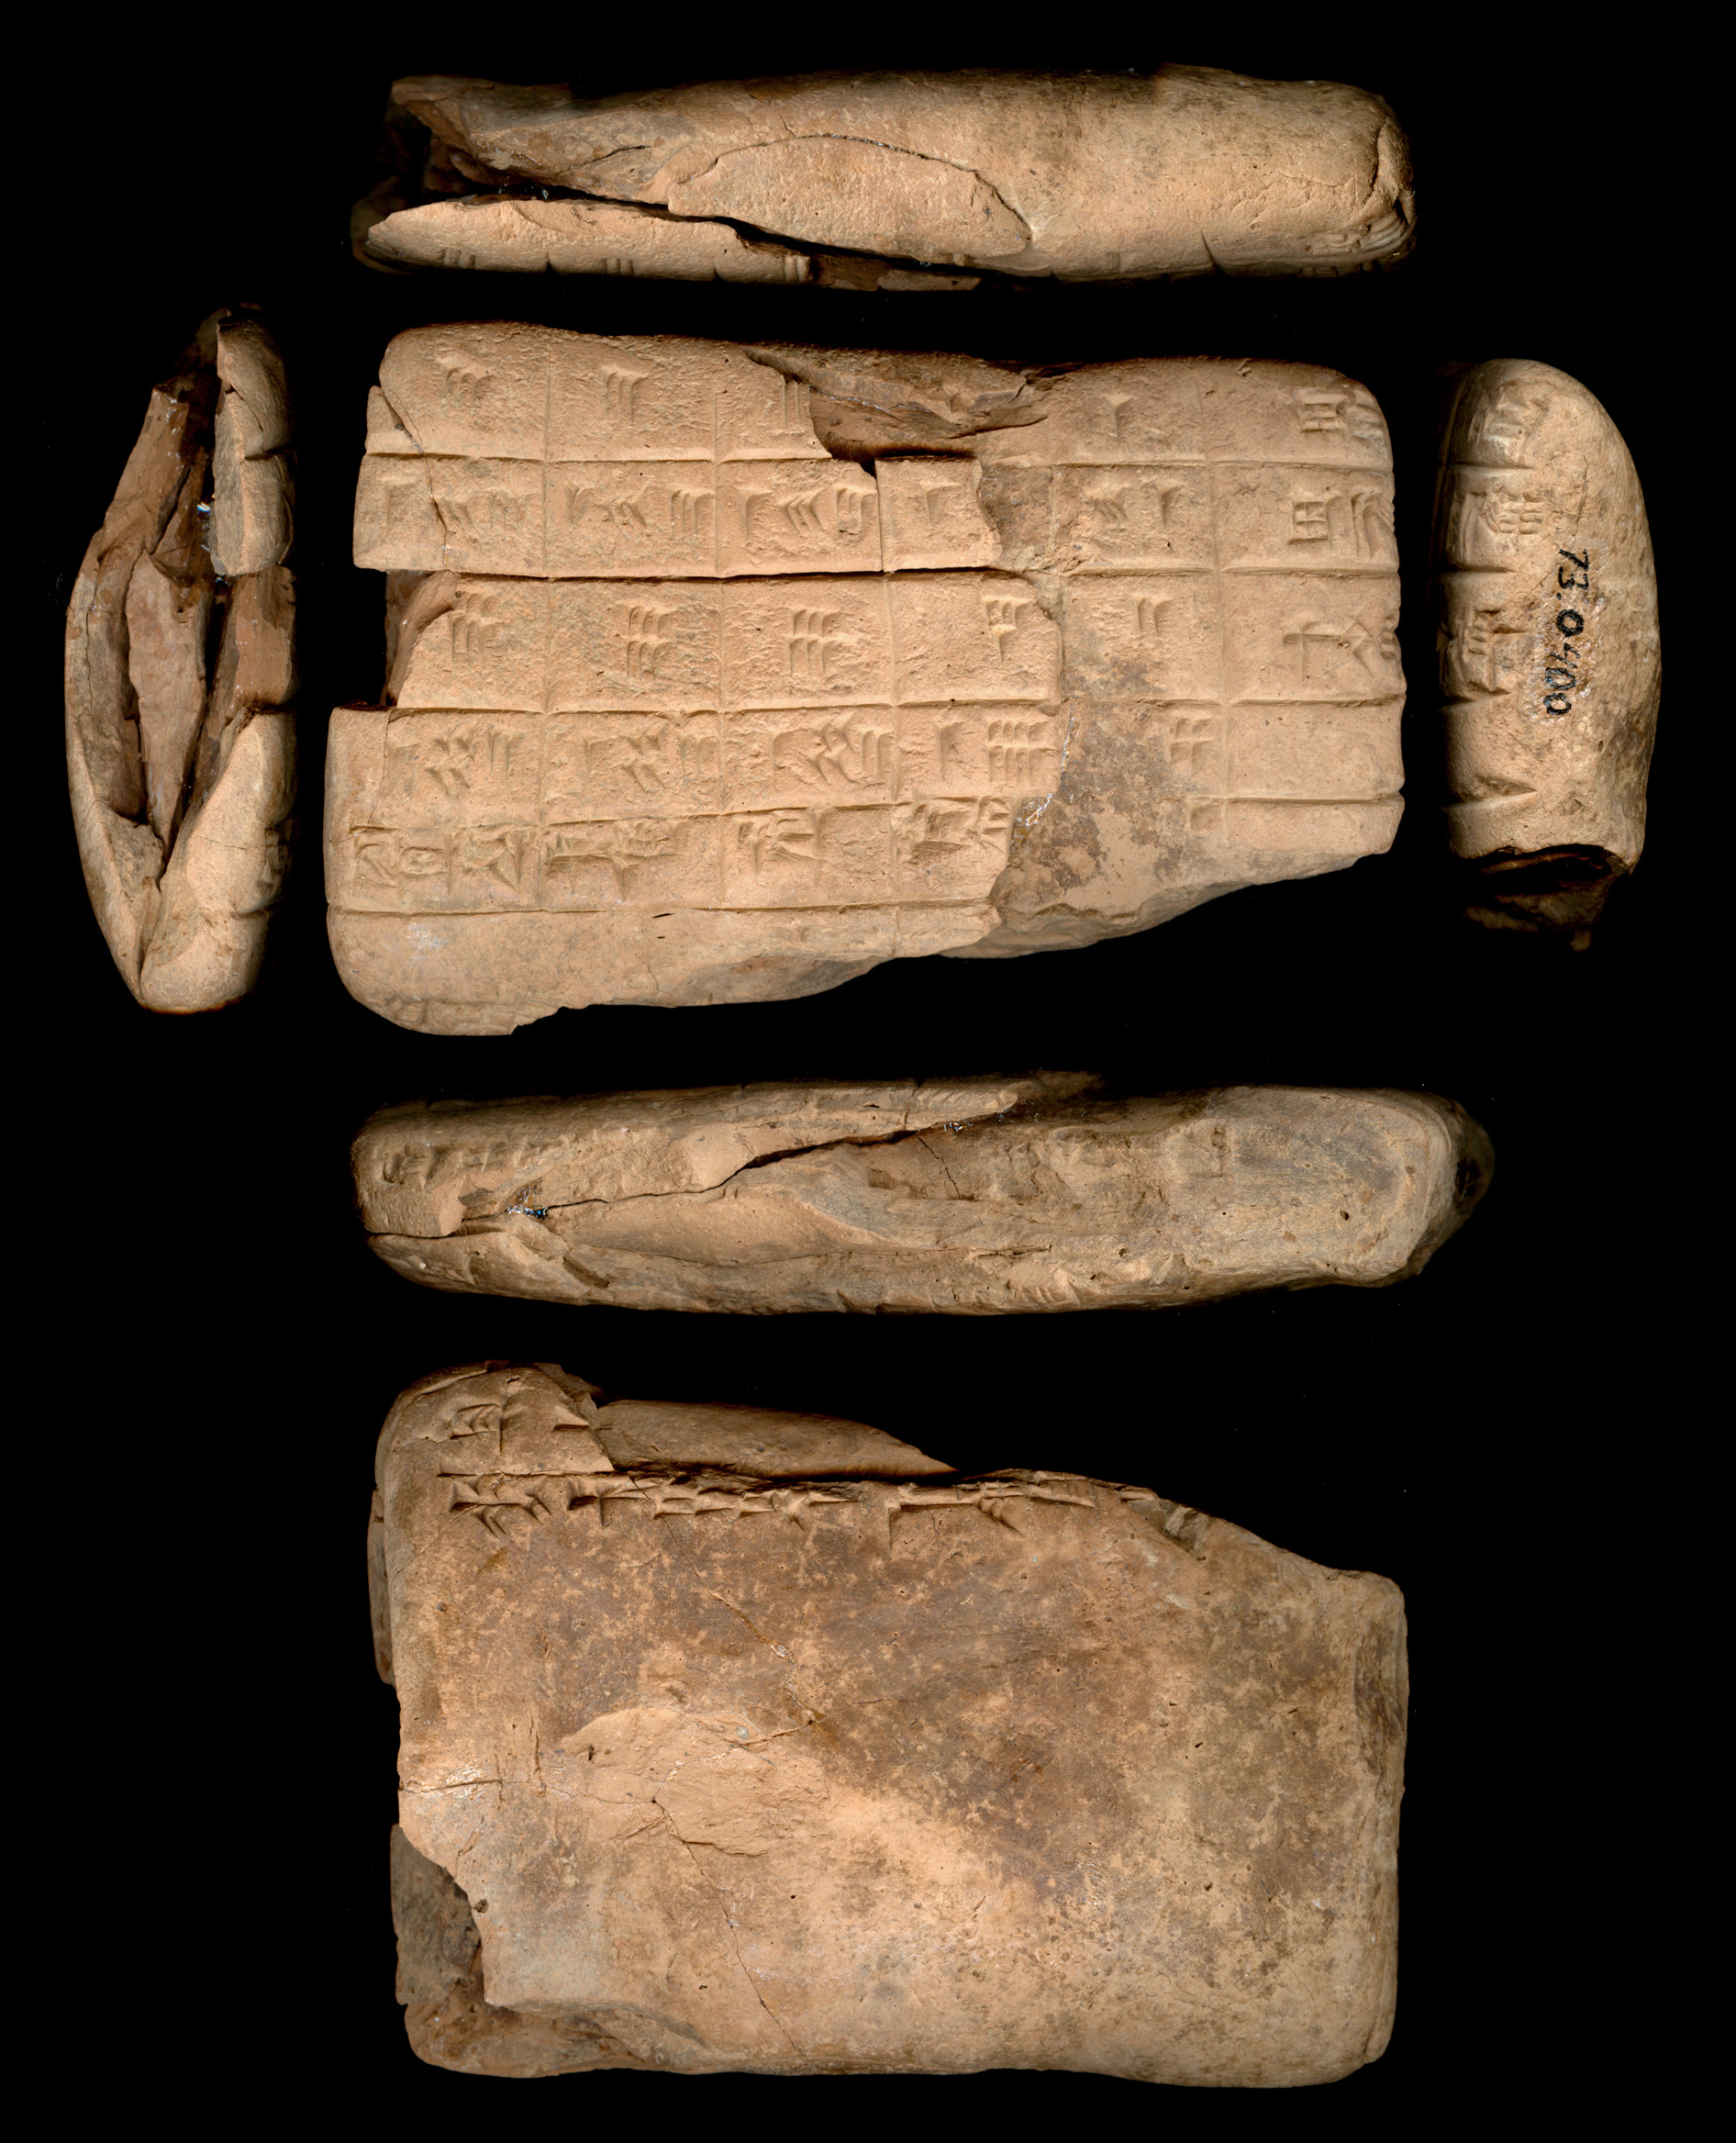 Pieces of a clay tablet with inscriptions. Several pieces just have a little inscription along one edge, but the one piece is entirely divided into rows and columns. Each cell contains a few characters of some language.